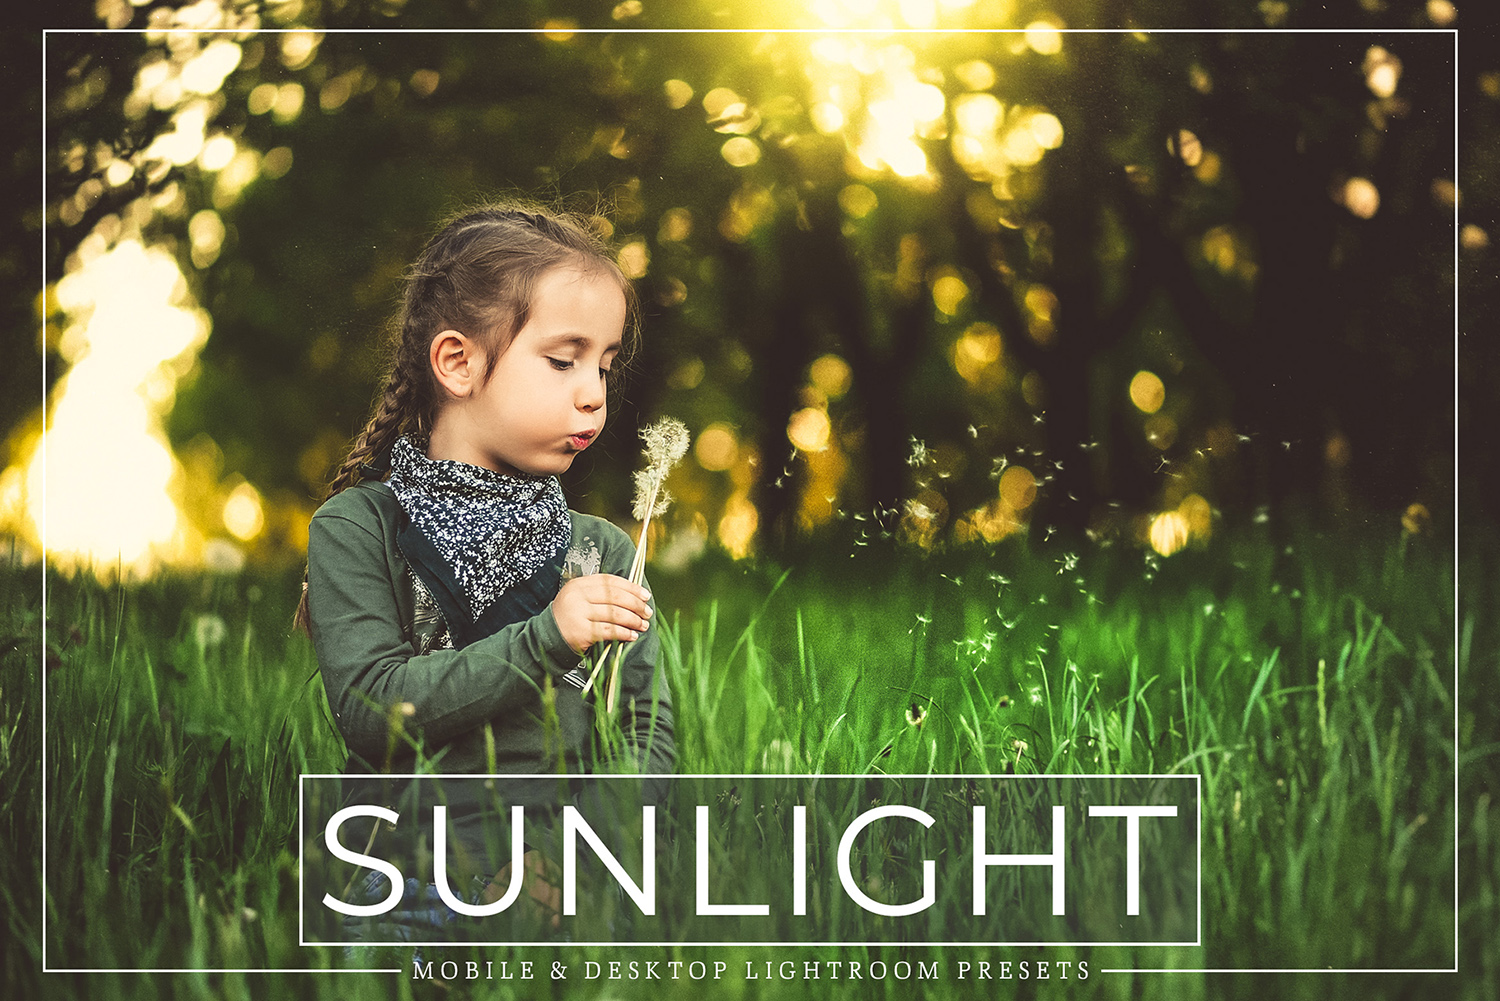 Sunlight Mobile and Desktop Lightroom Presets Pack example image 1